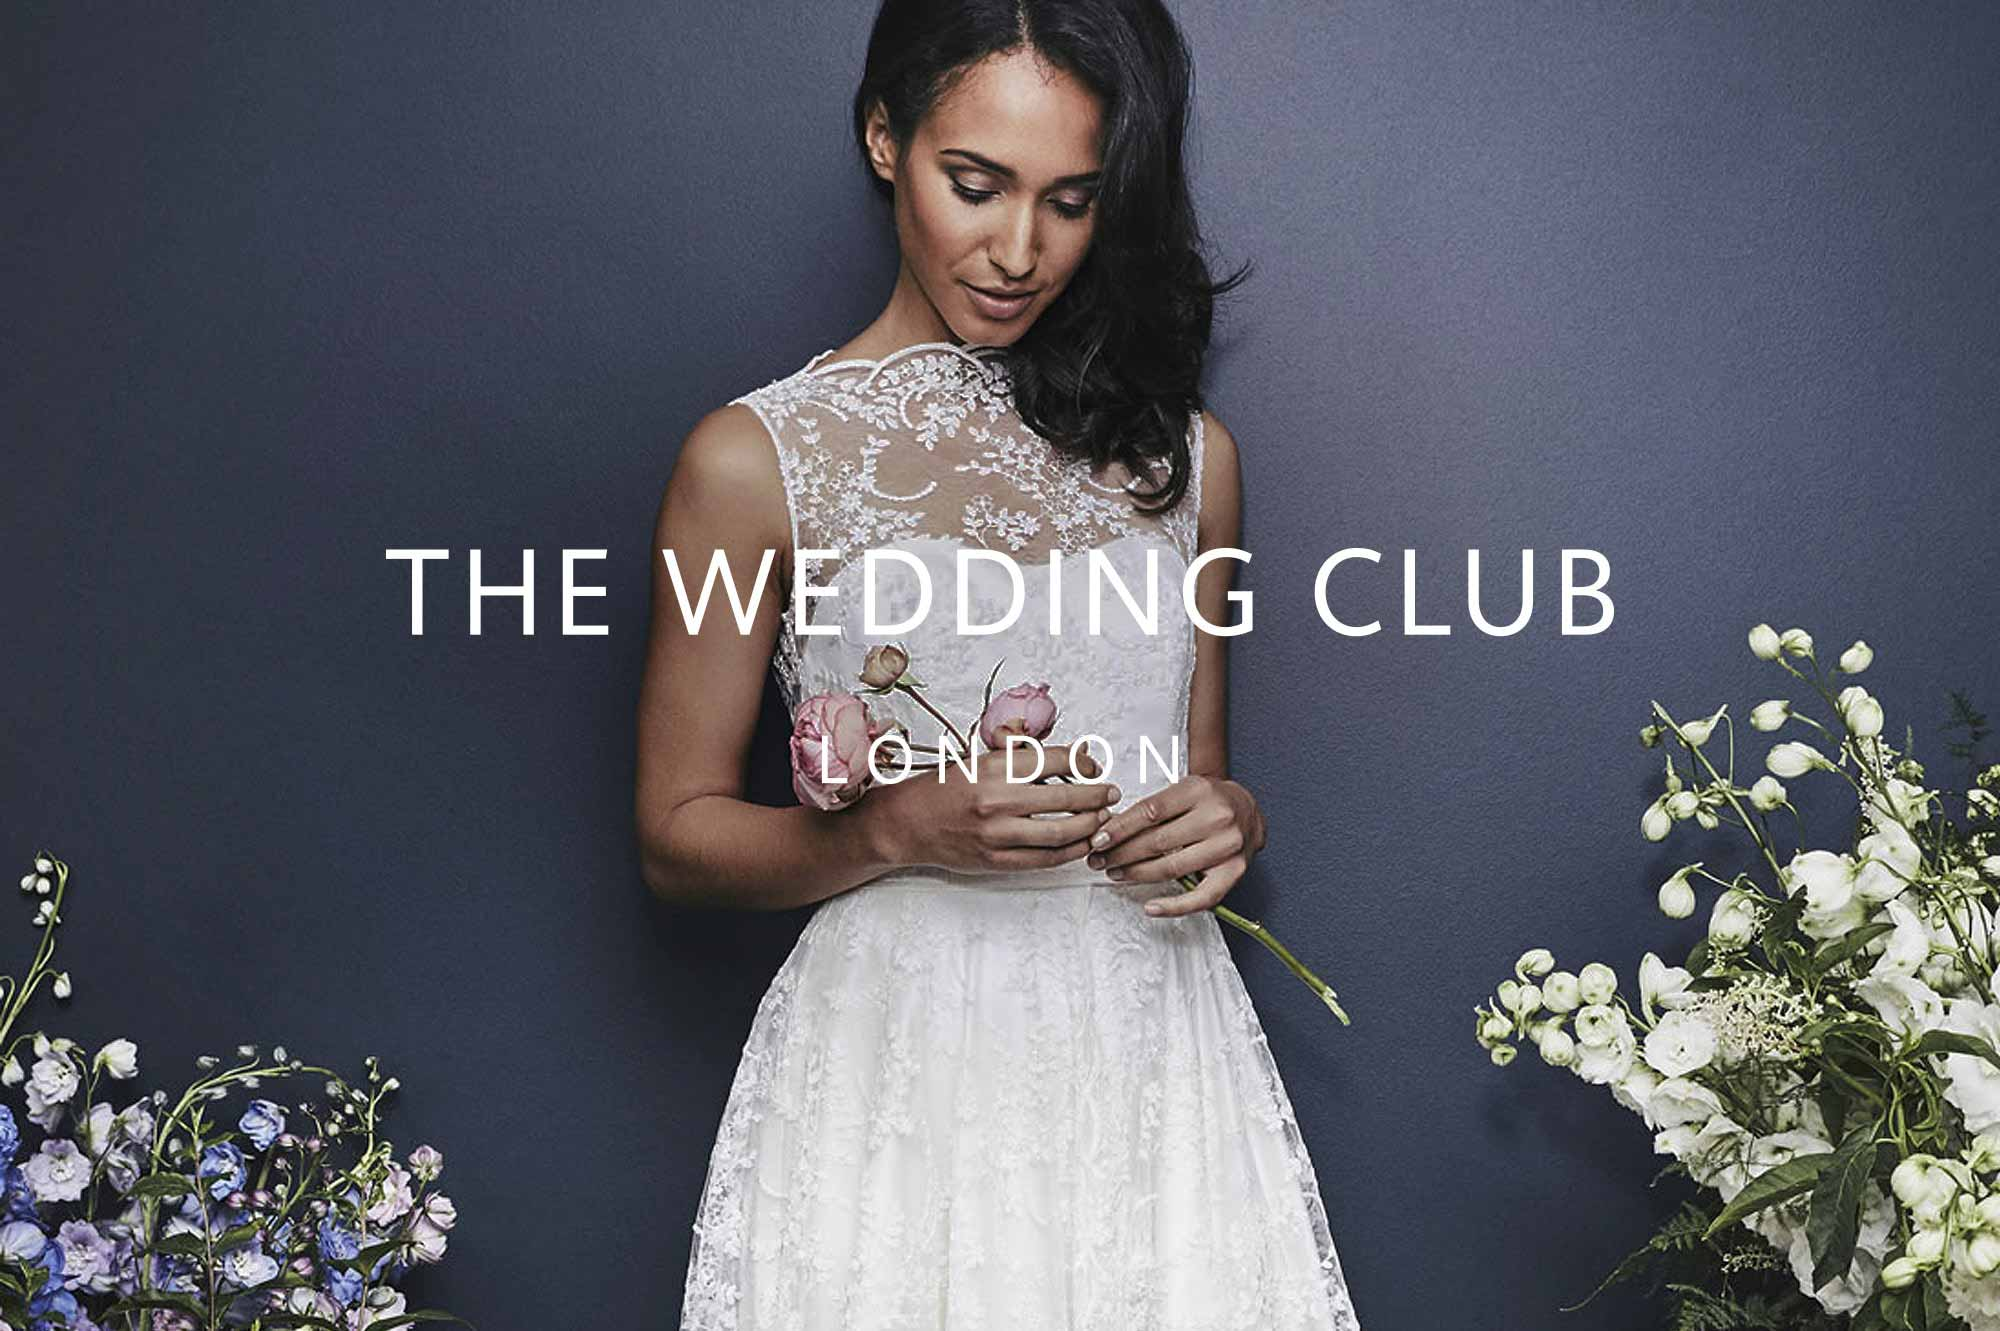 The Wedding Club Logo with Bride Holding Flowers